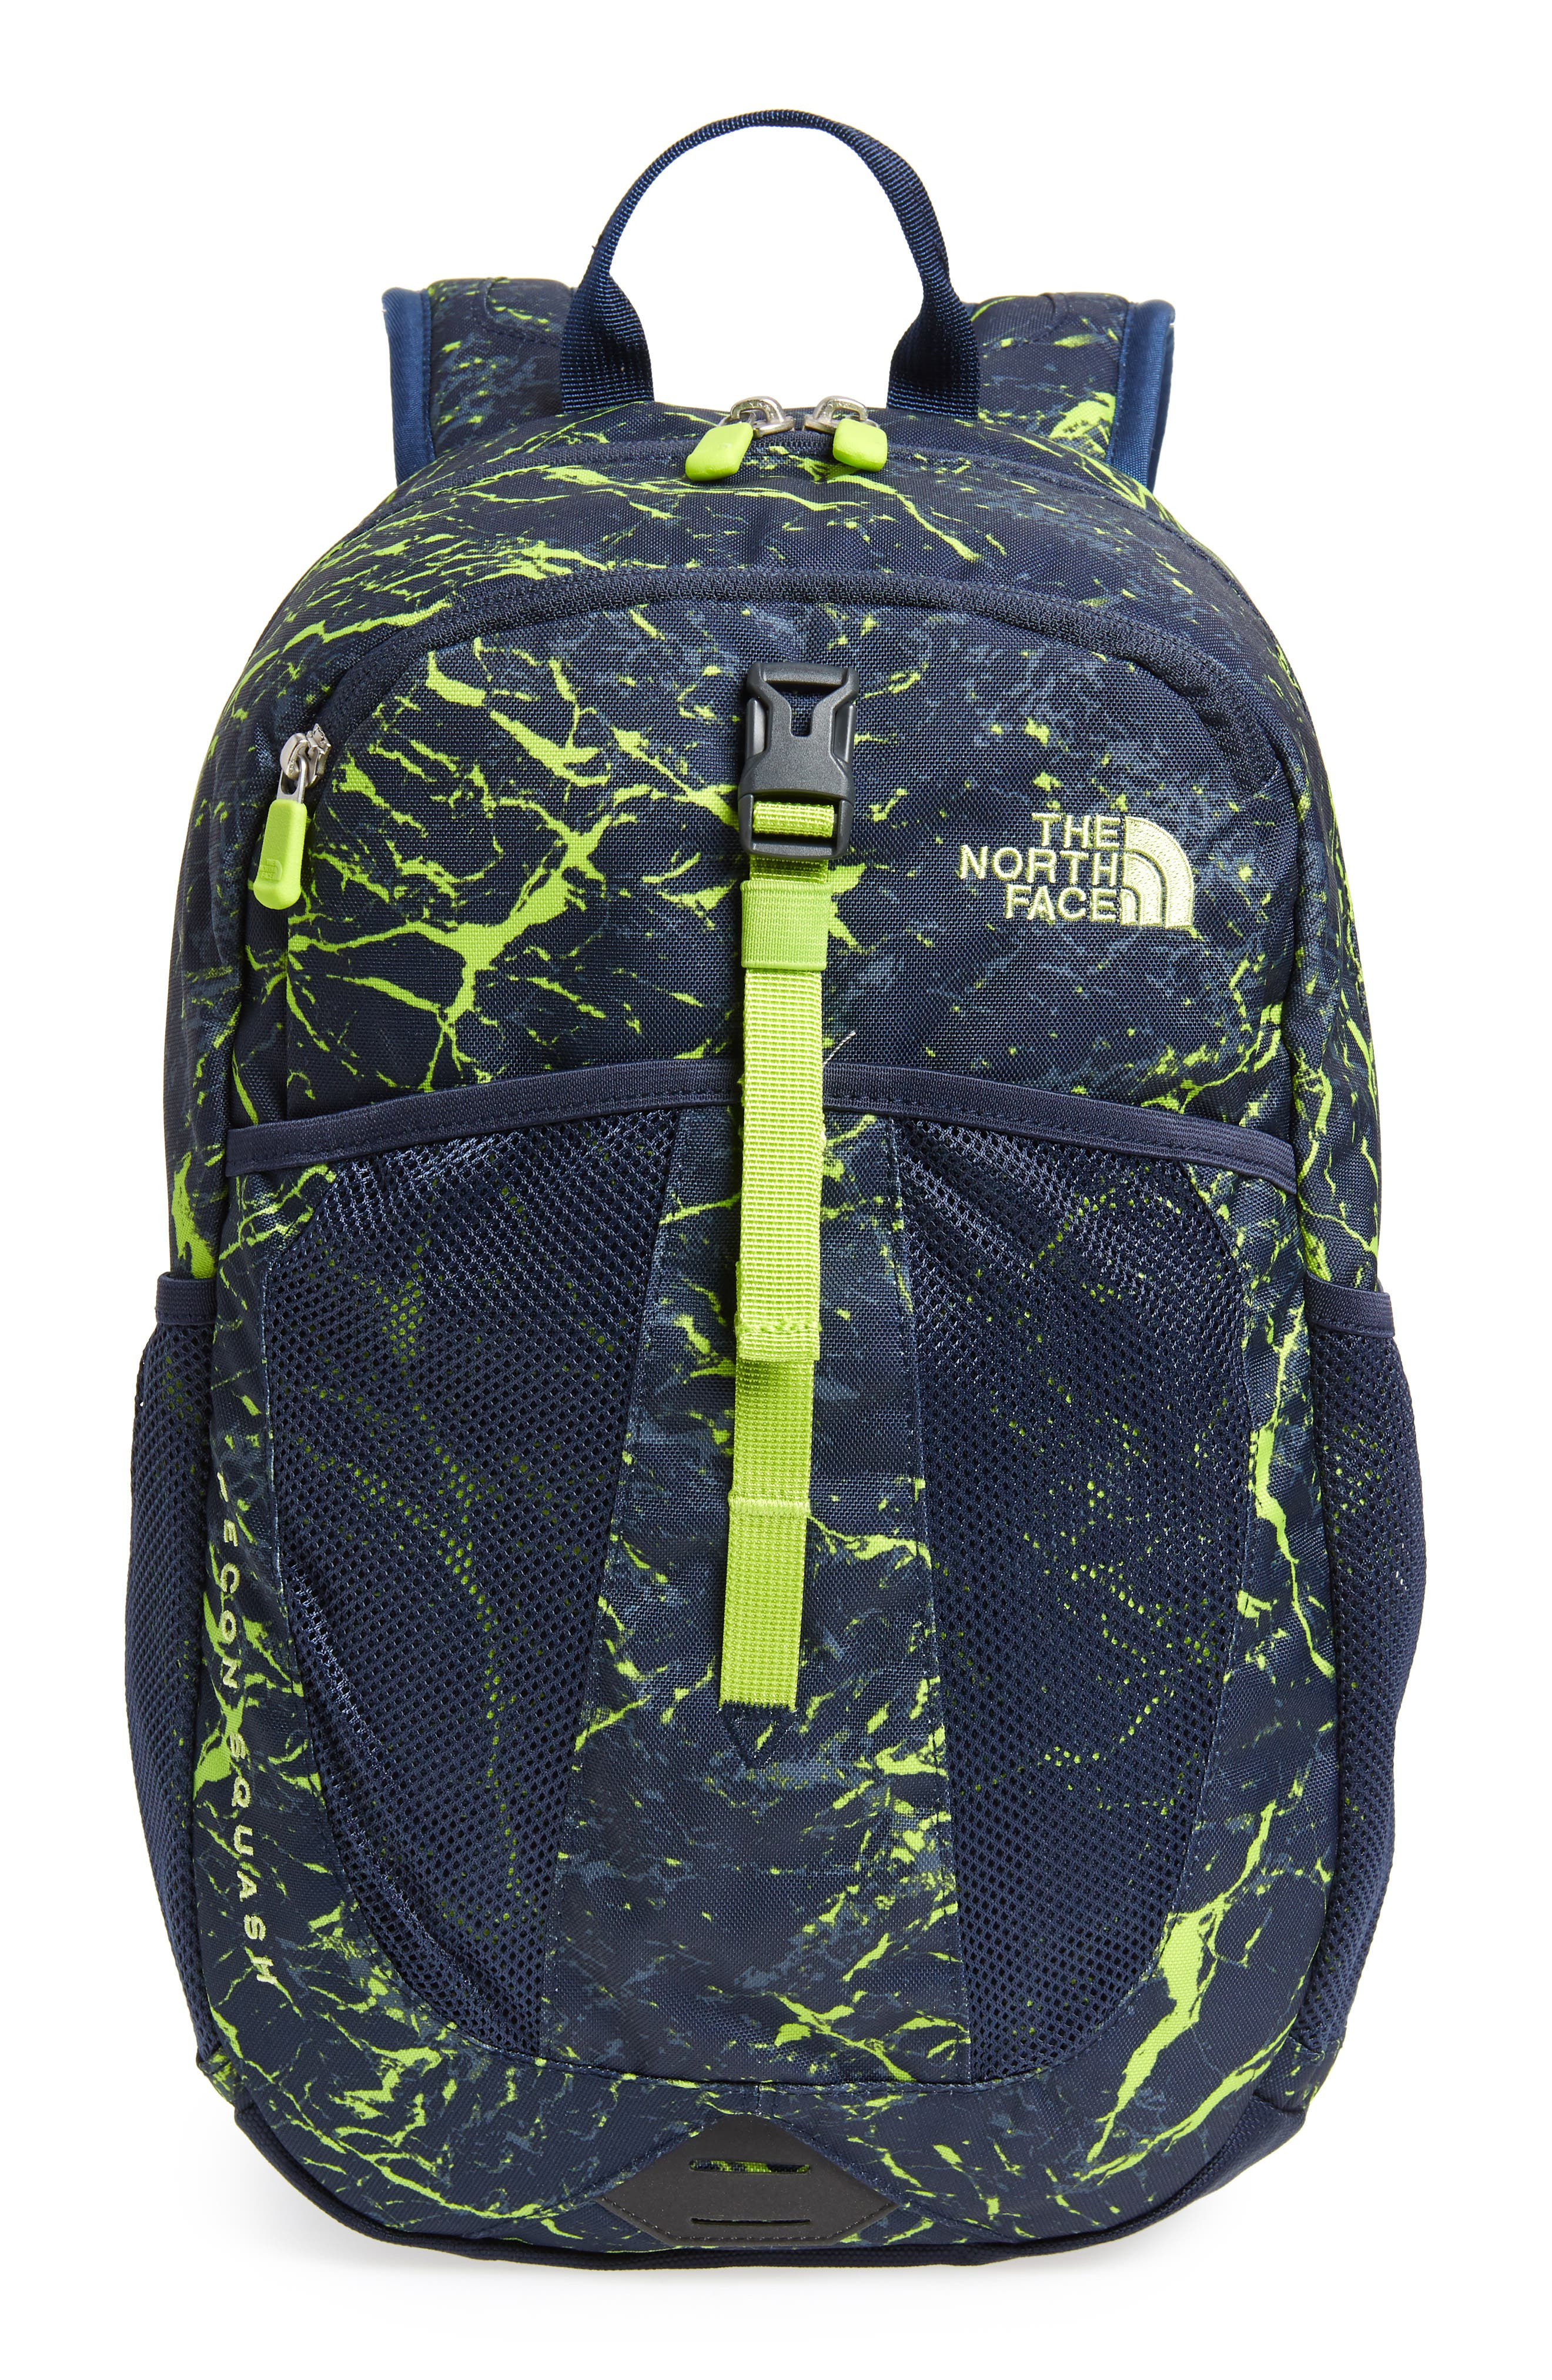 Recon Squash Backpack,                         Main,                         color, 401